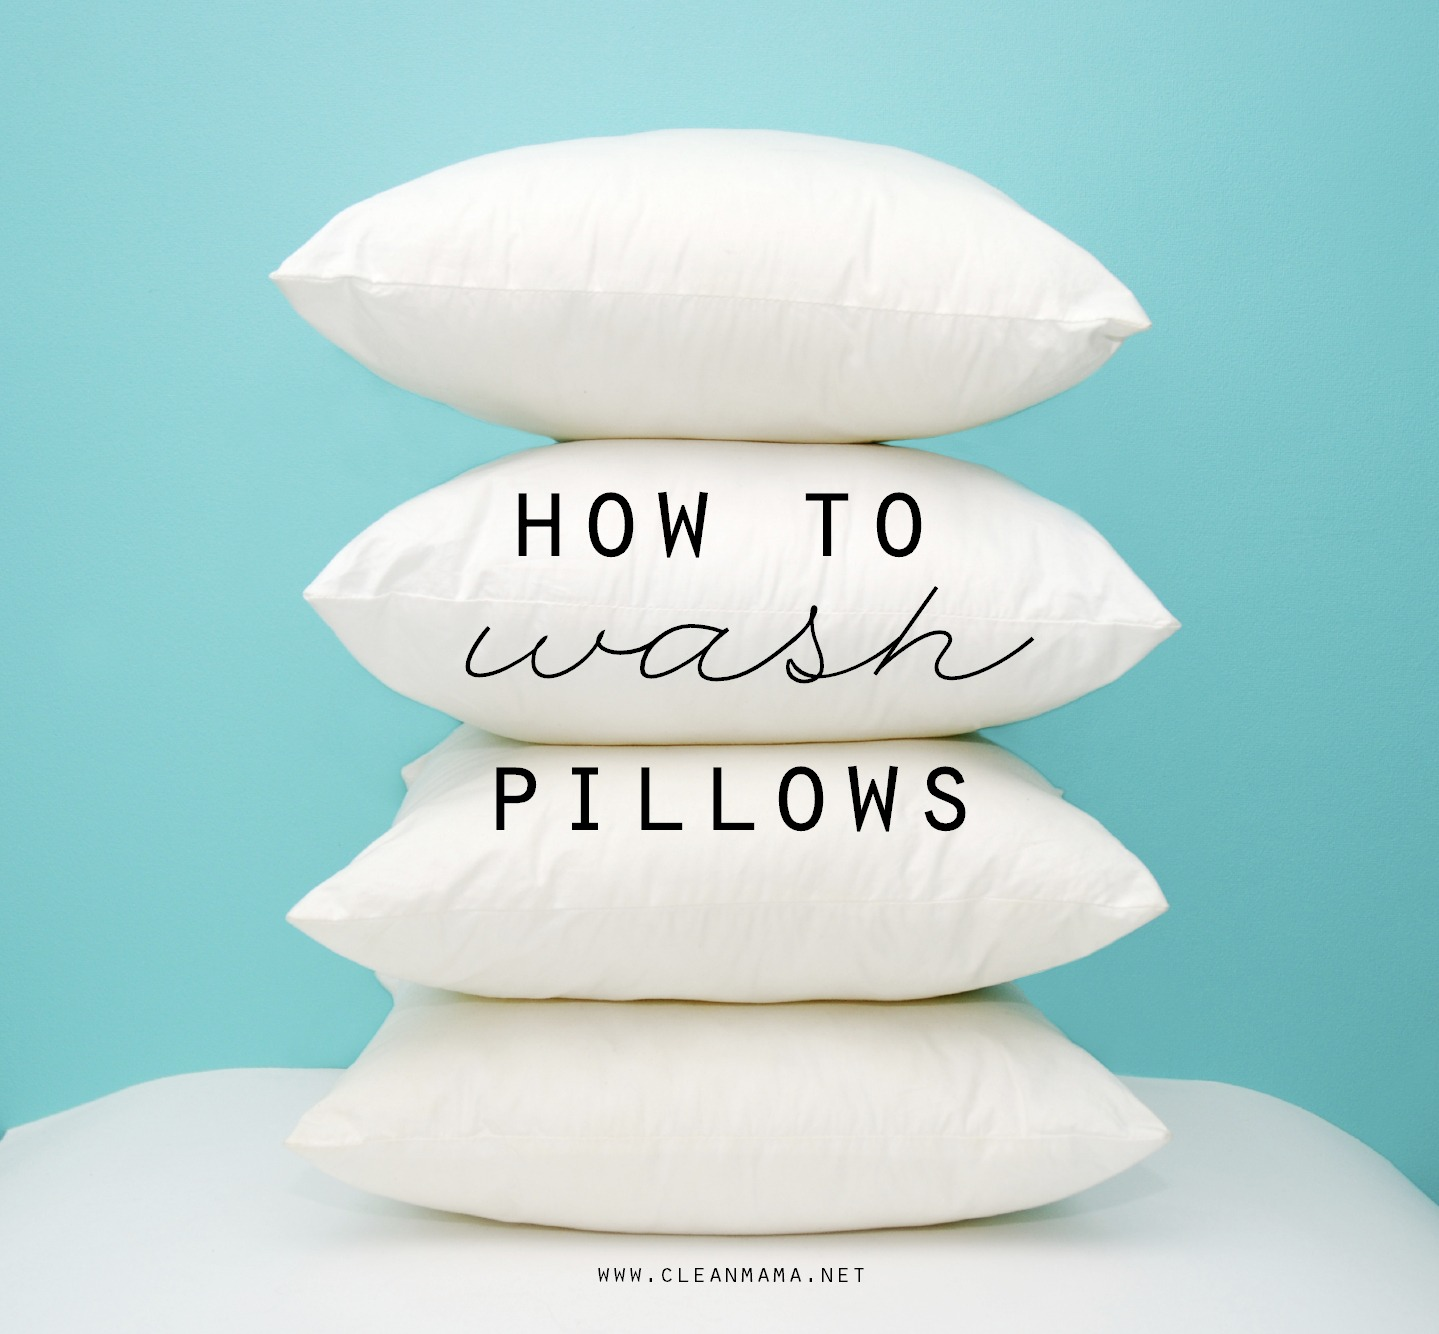 How To Wash Pillows Clean Mama